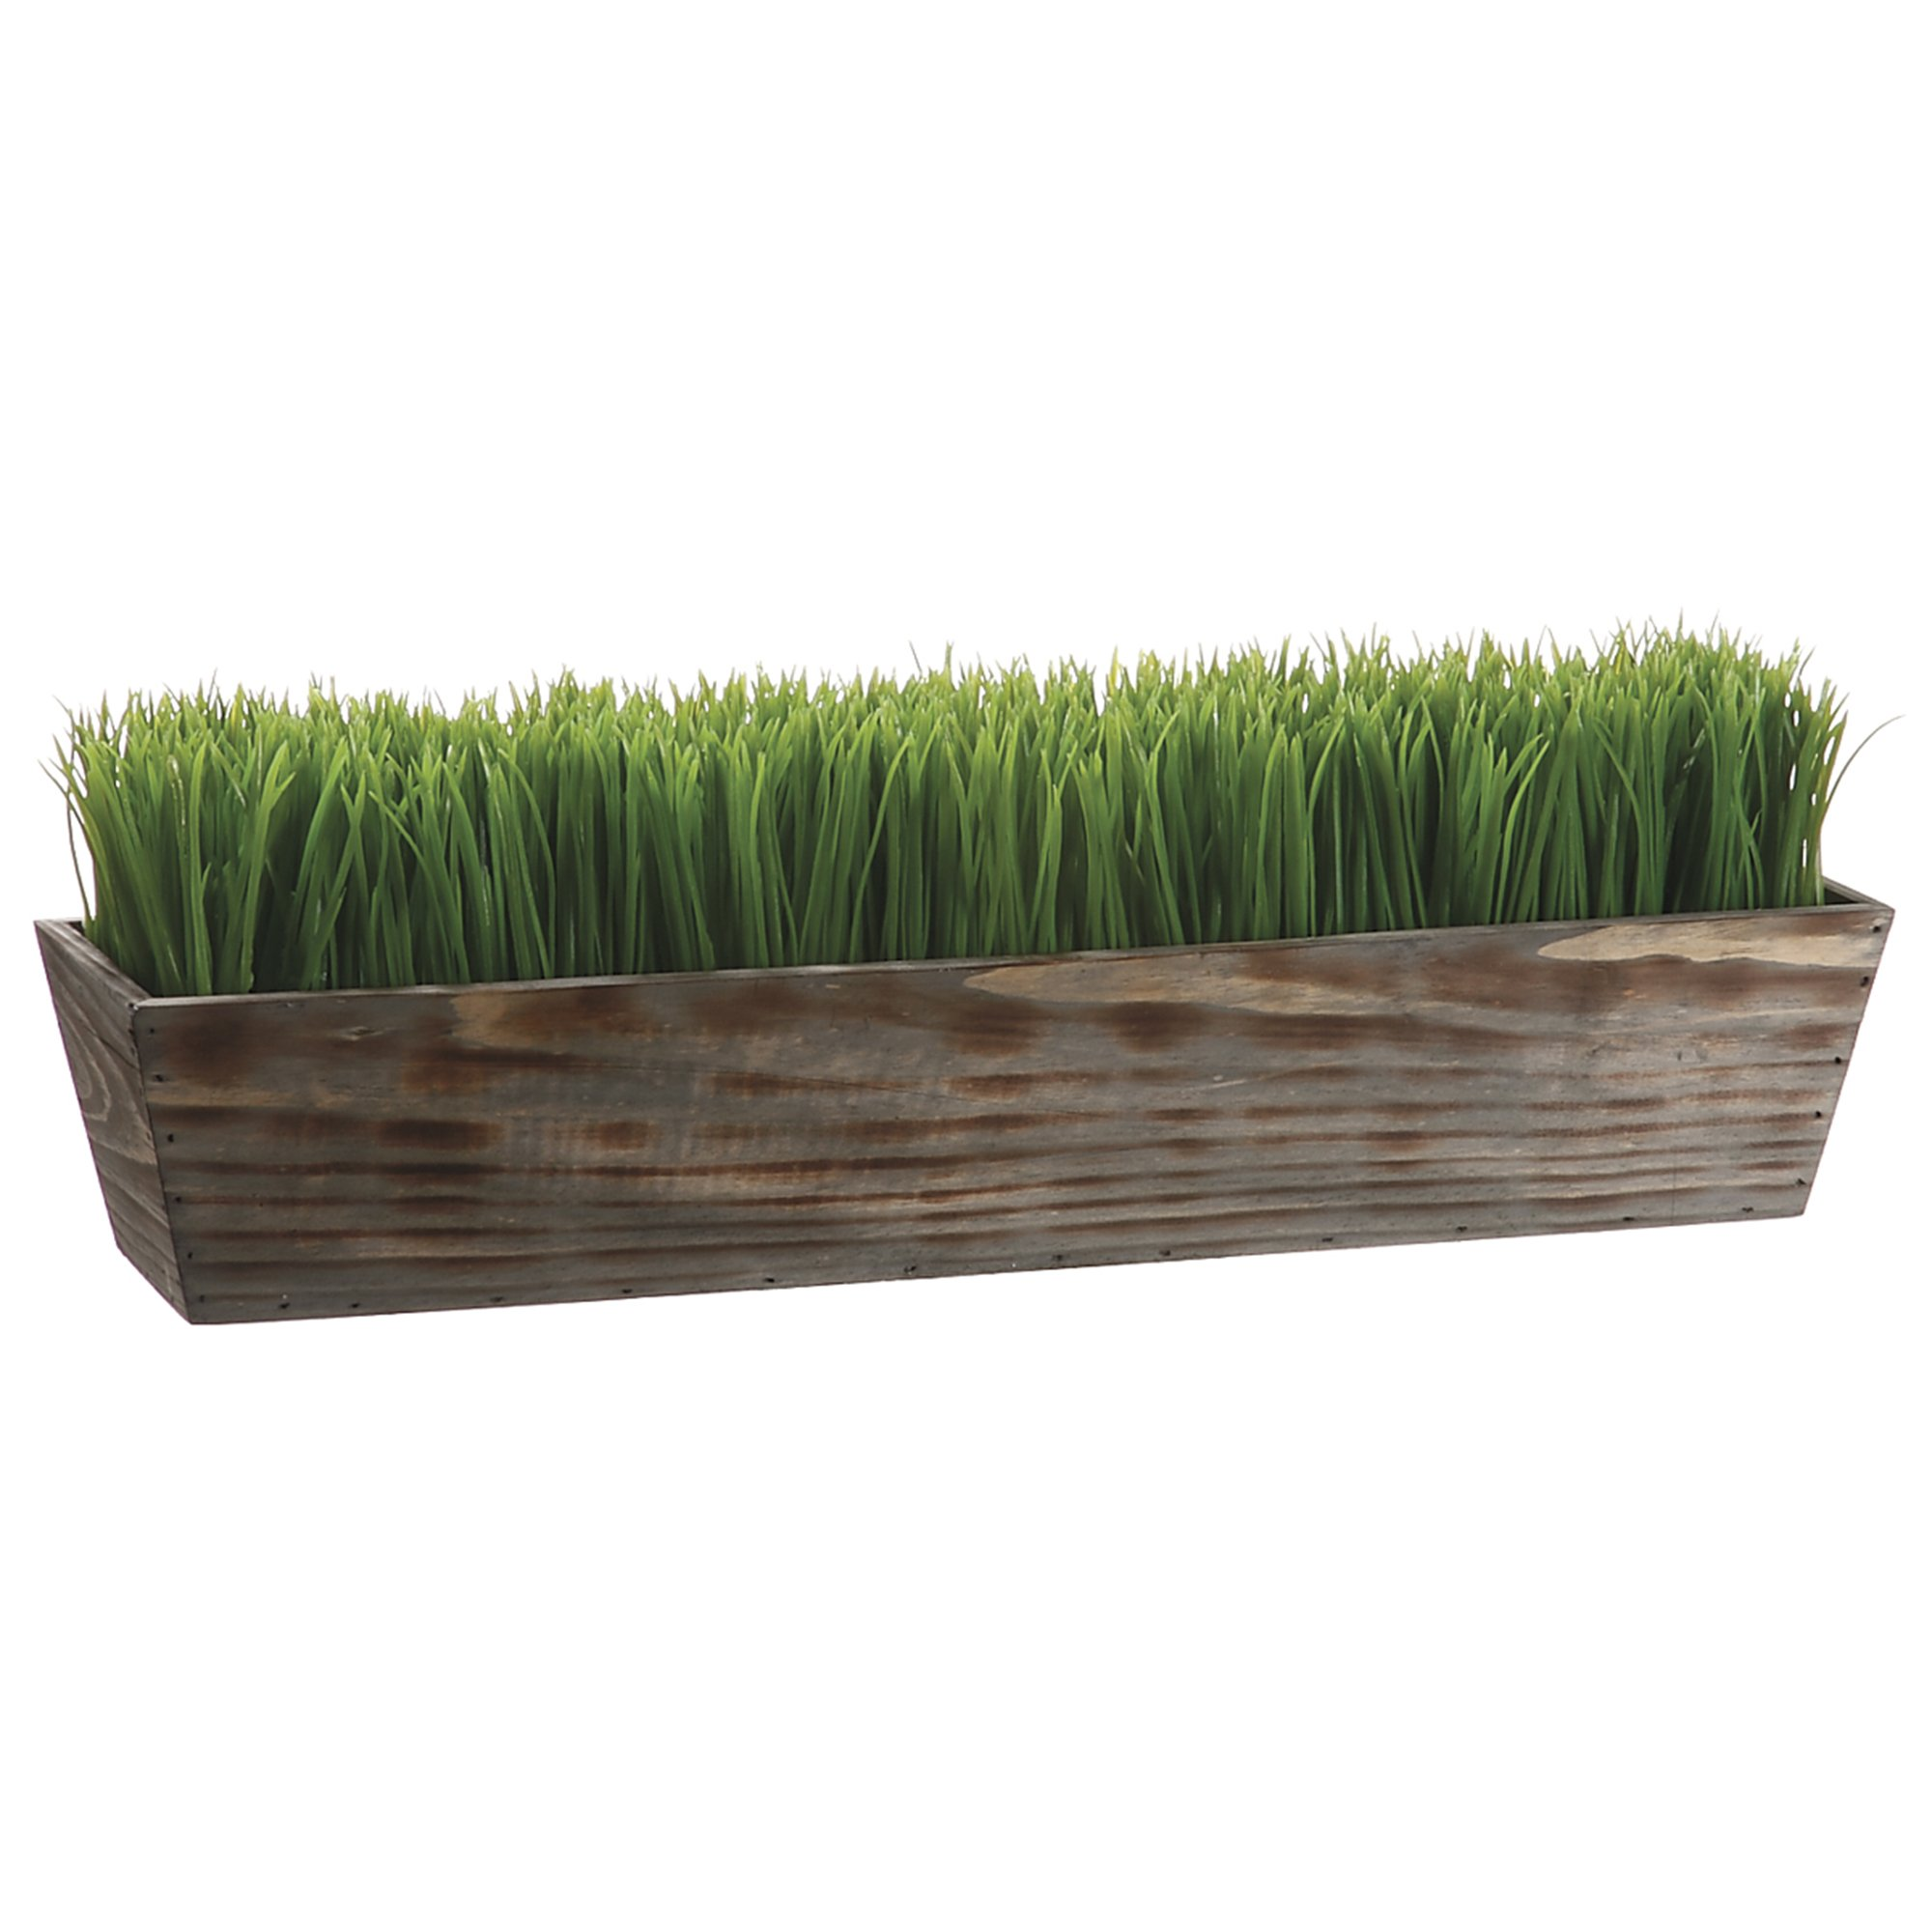 House of Silk Flowers Artificial Wheatgrass in Natural Wood Trough Planter